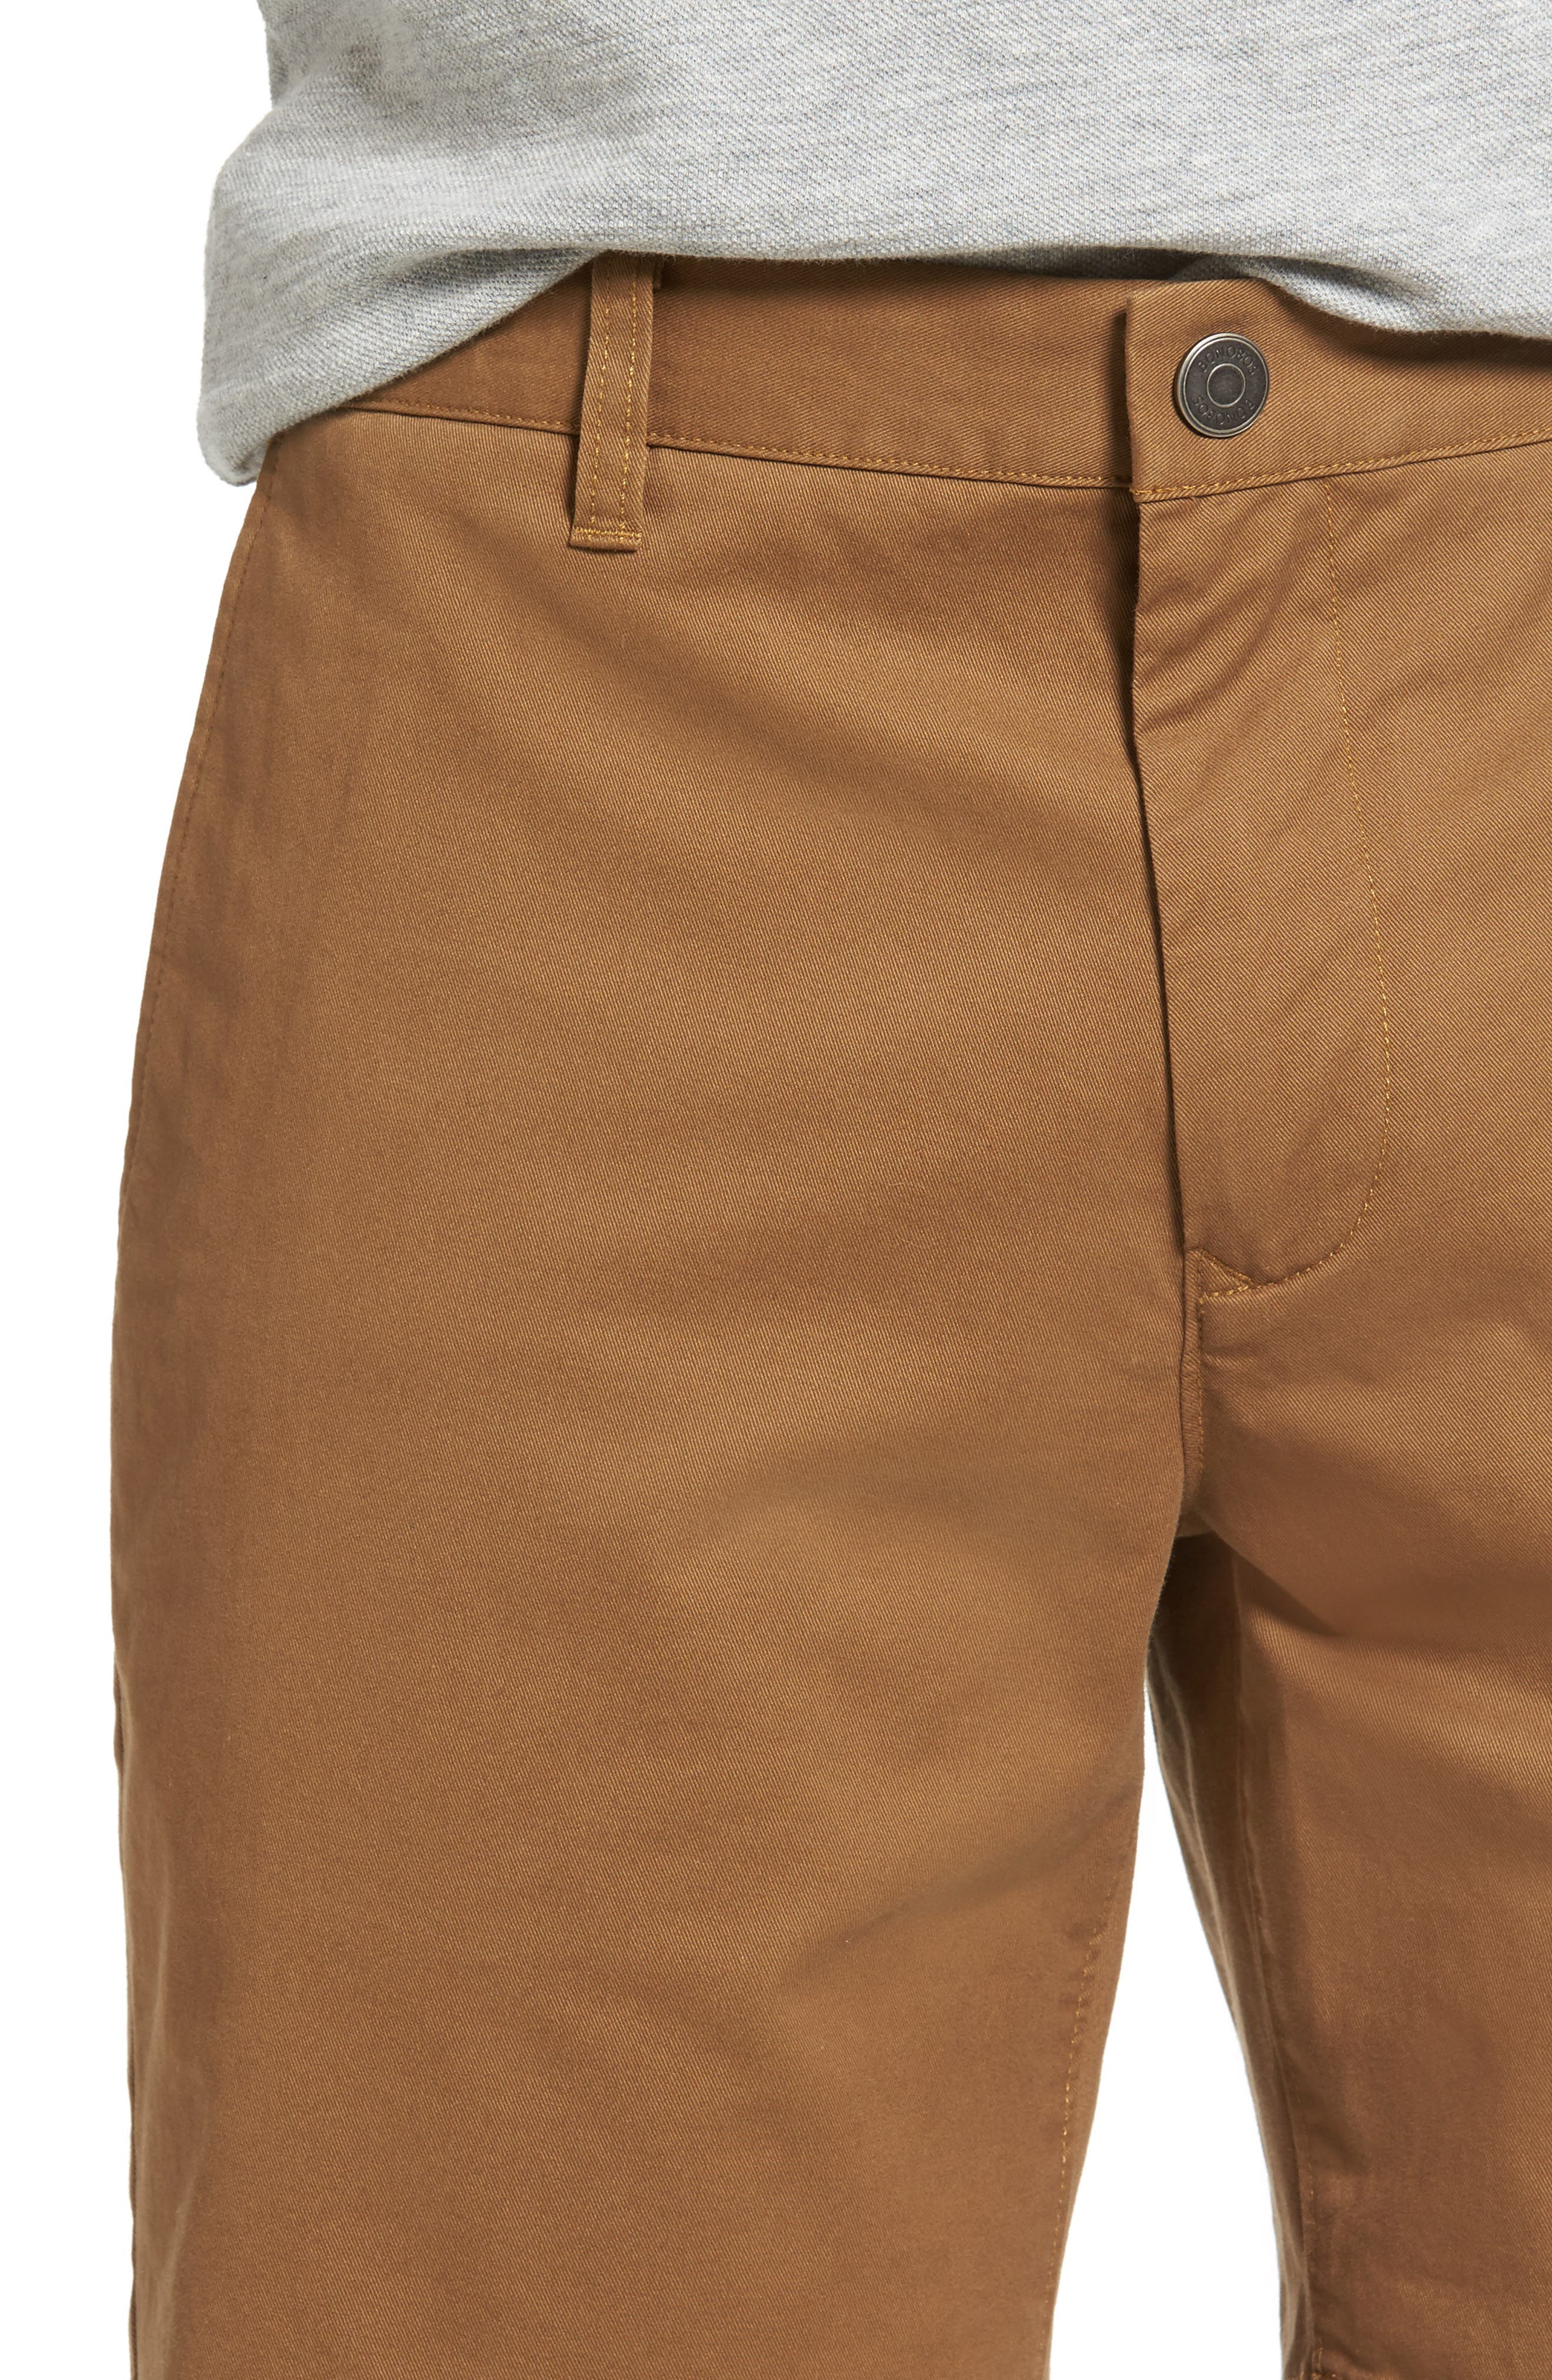 Stretch Washed Chino 7-Inch Shorts,                             Alternate thumbnail 81, color,